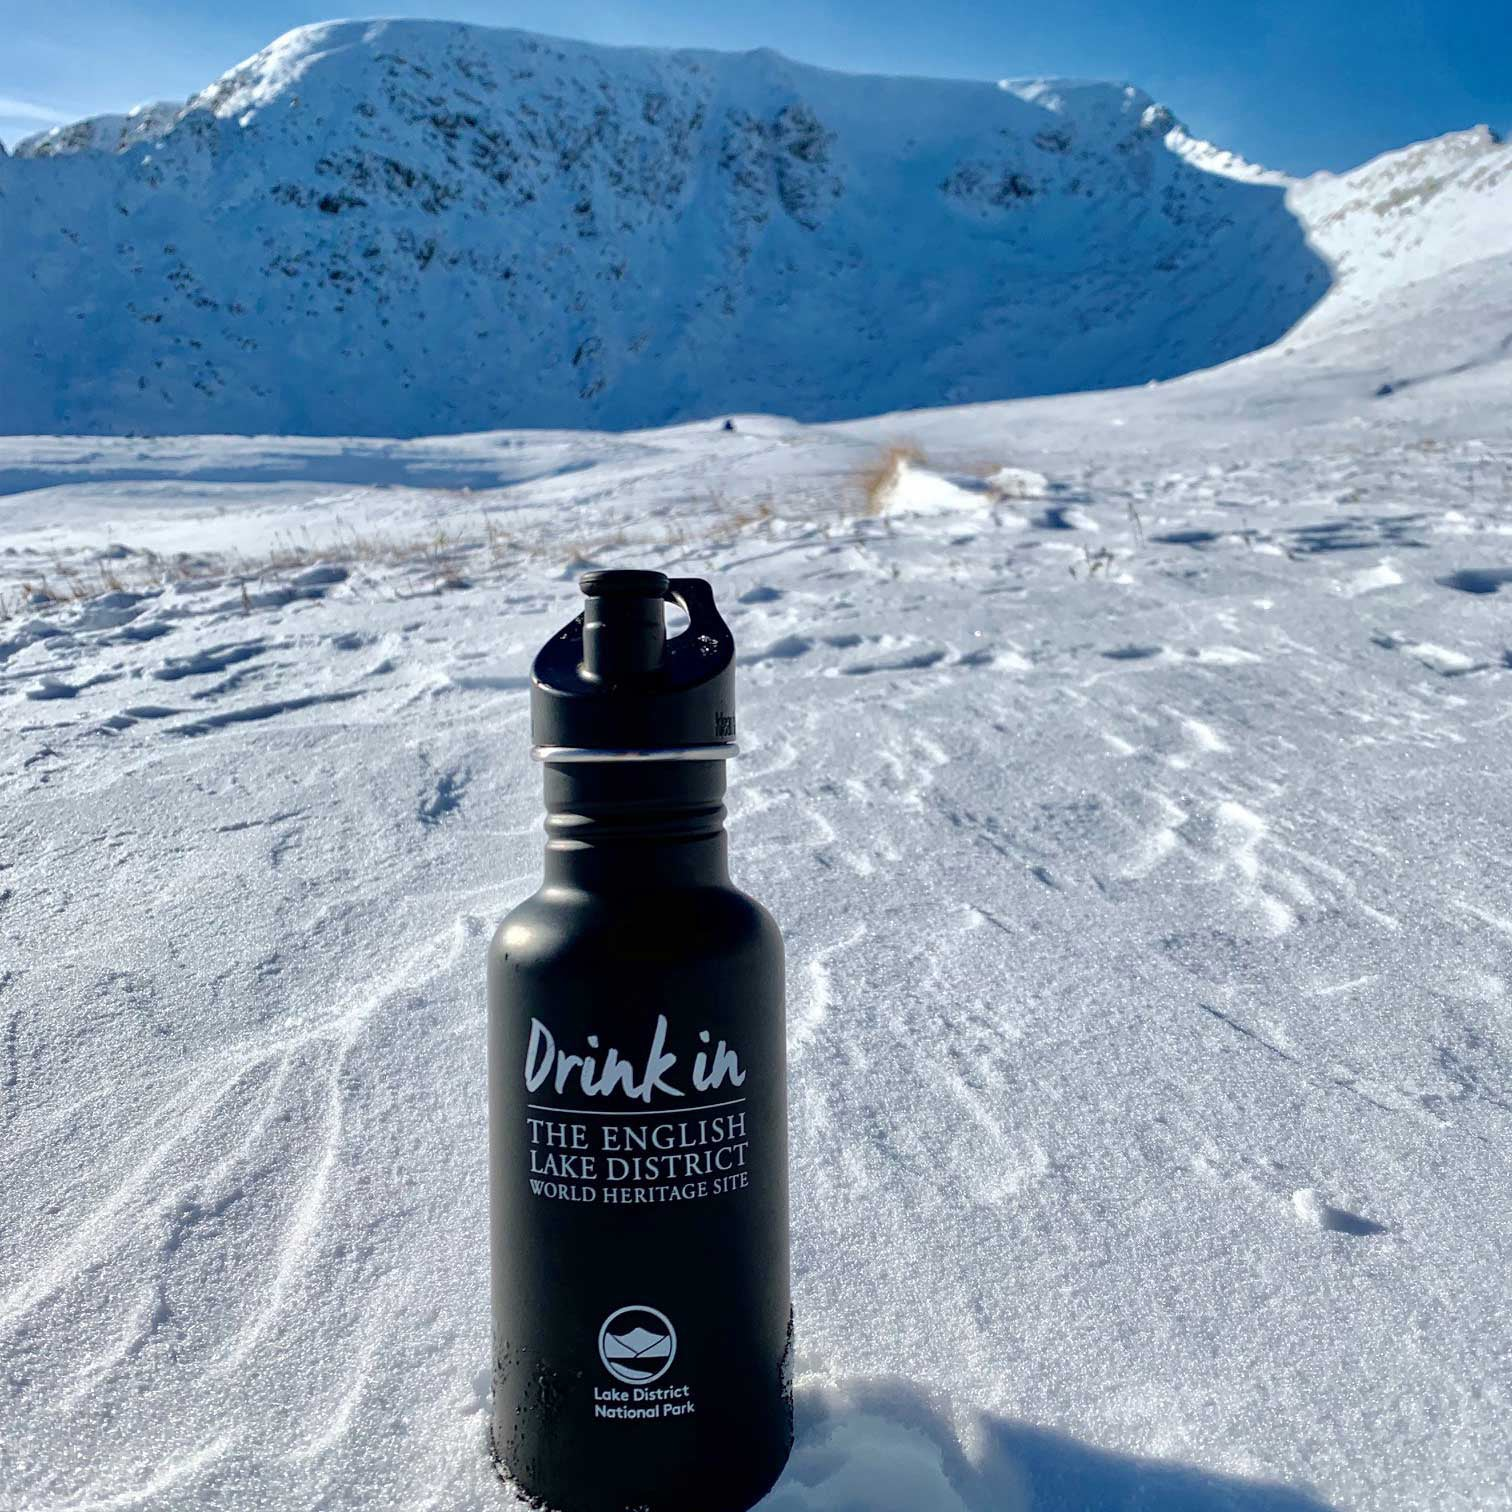 One black water bottle at the base of Helvellyn Lake Distric